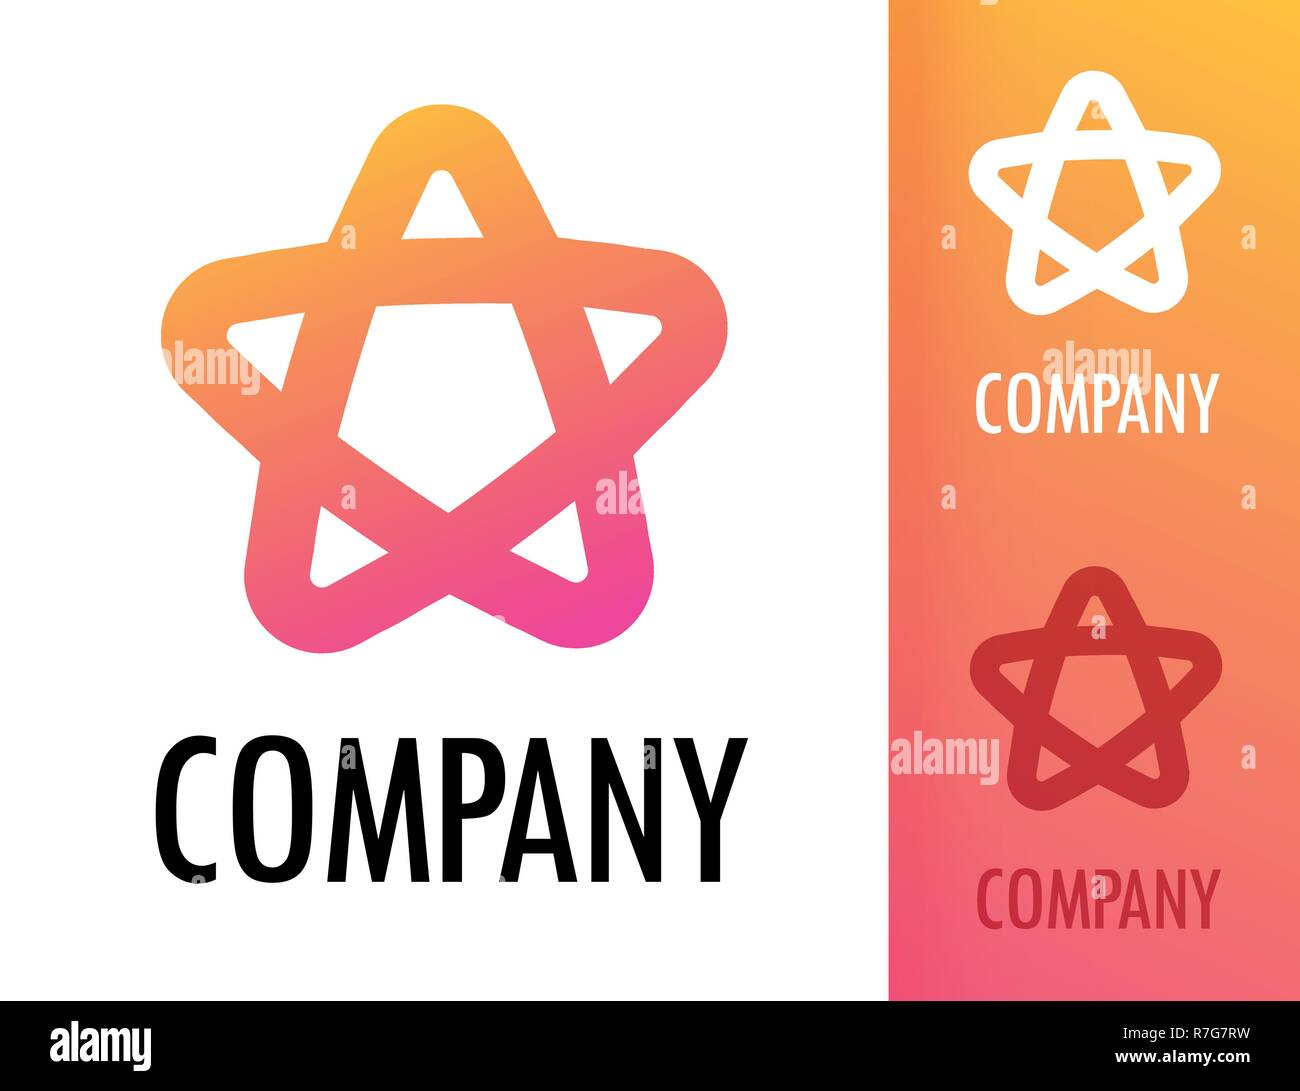 Colorful Star with round corners orange pink color - Vector logo emblem illustration for modern business energy company. Stock Vector